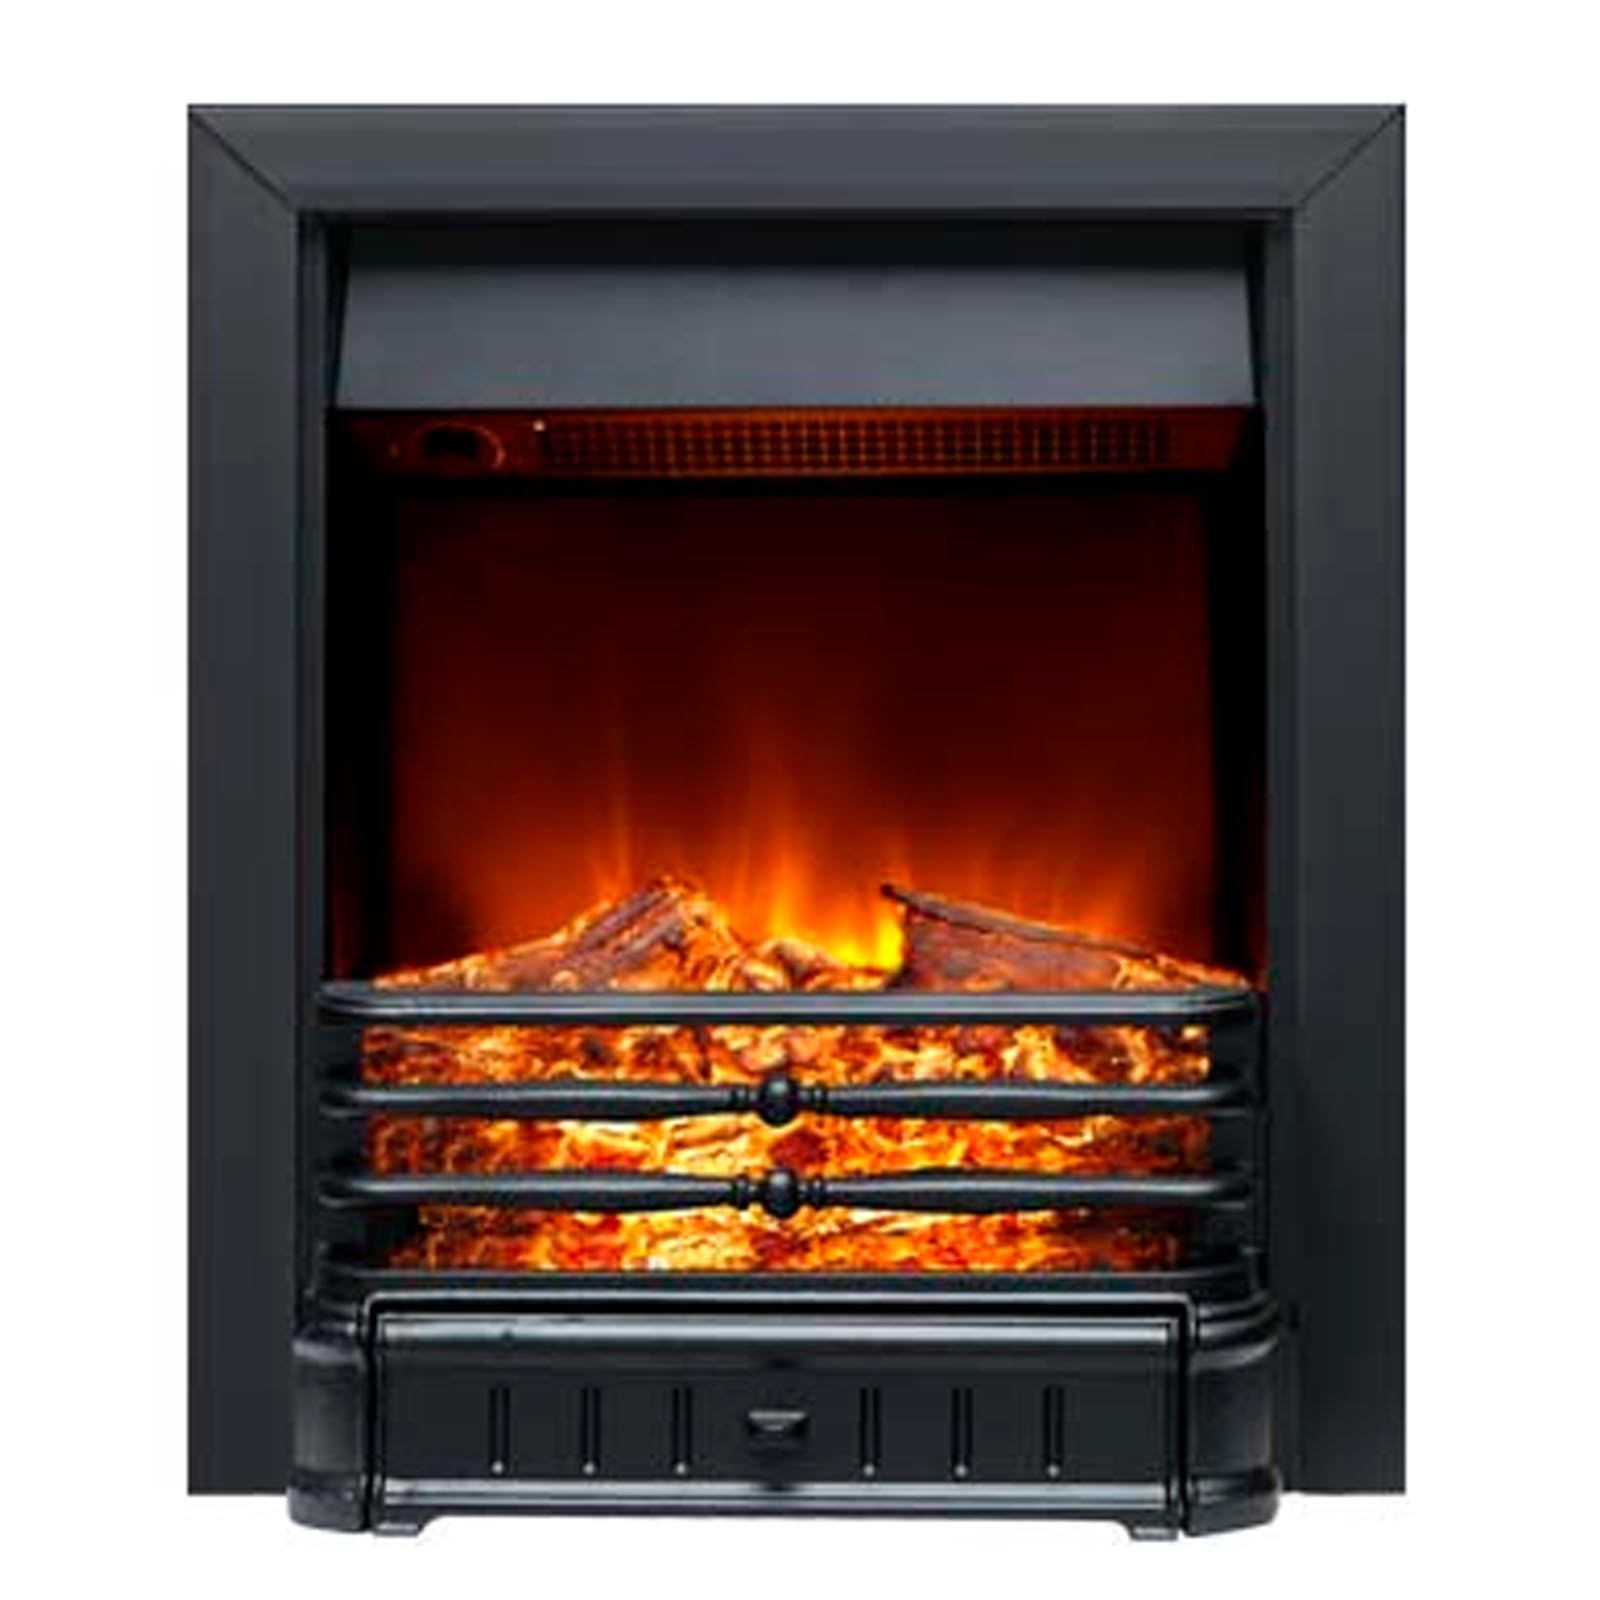 low electric fire prices burley normanton electric fire. Black Bedroom Furniture Sets. Home Design Ideas